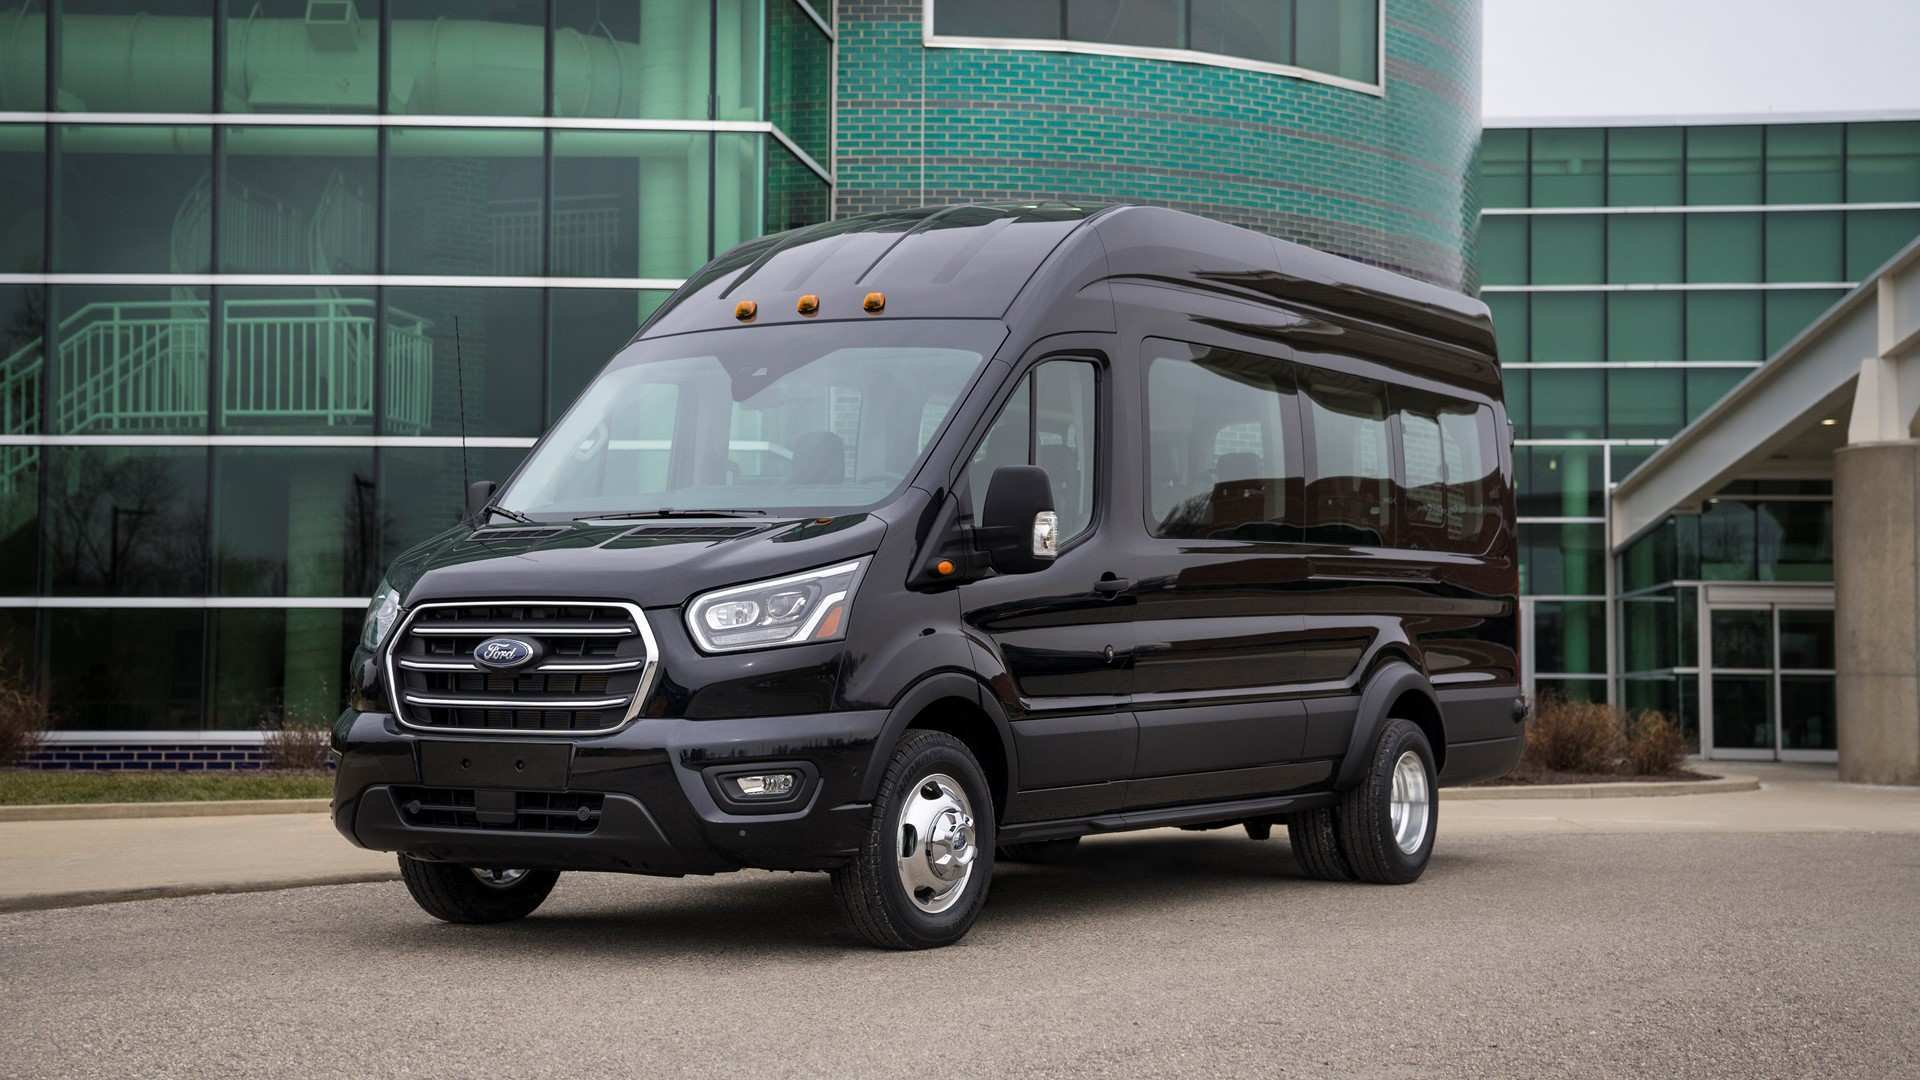 47 All New Ford Transit 2020 Release Date Specs And Review